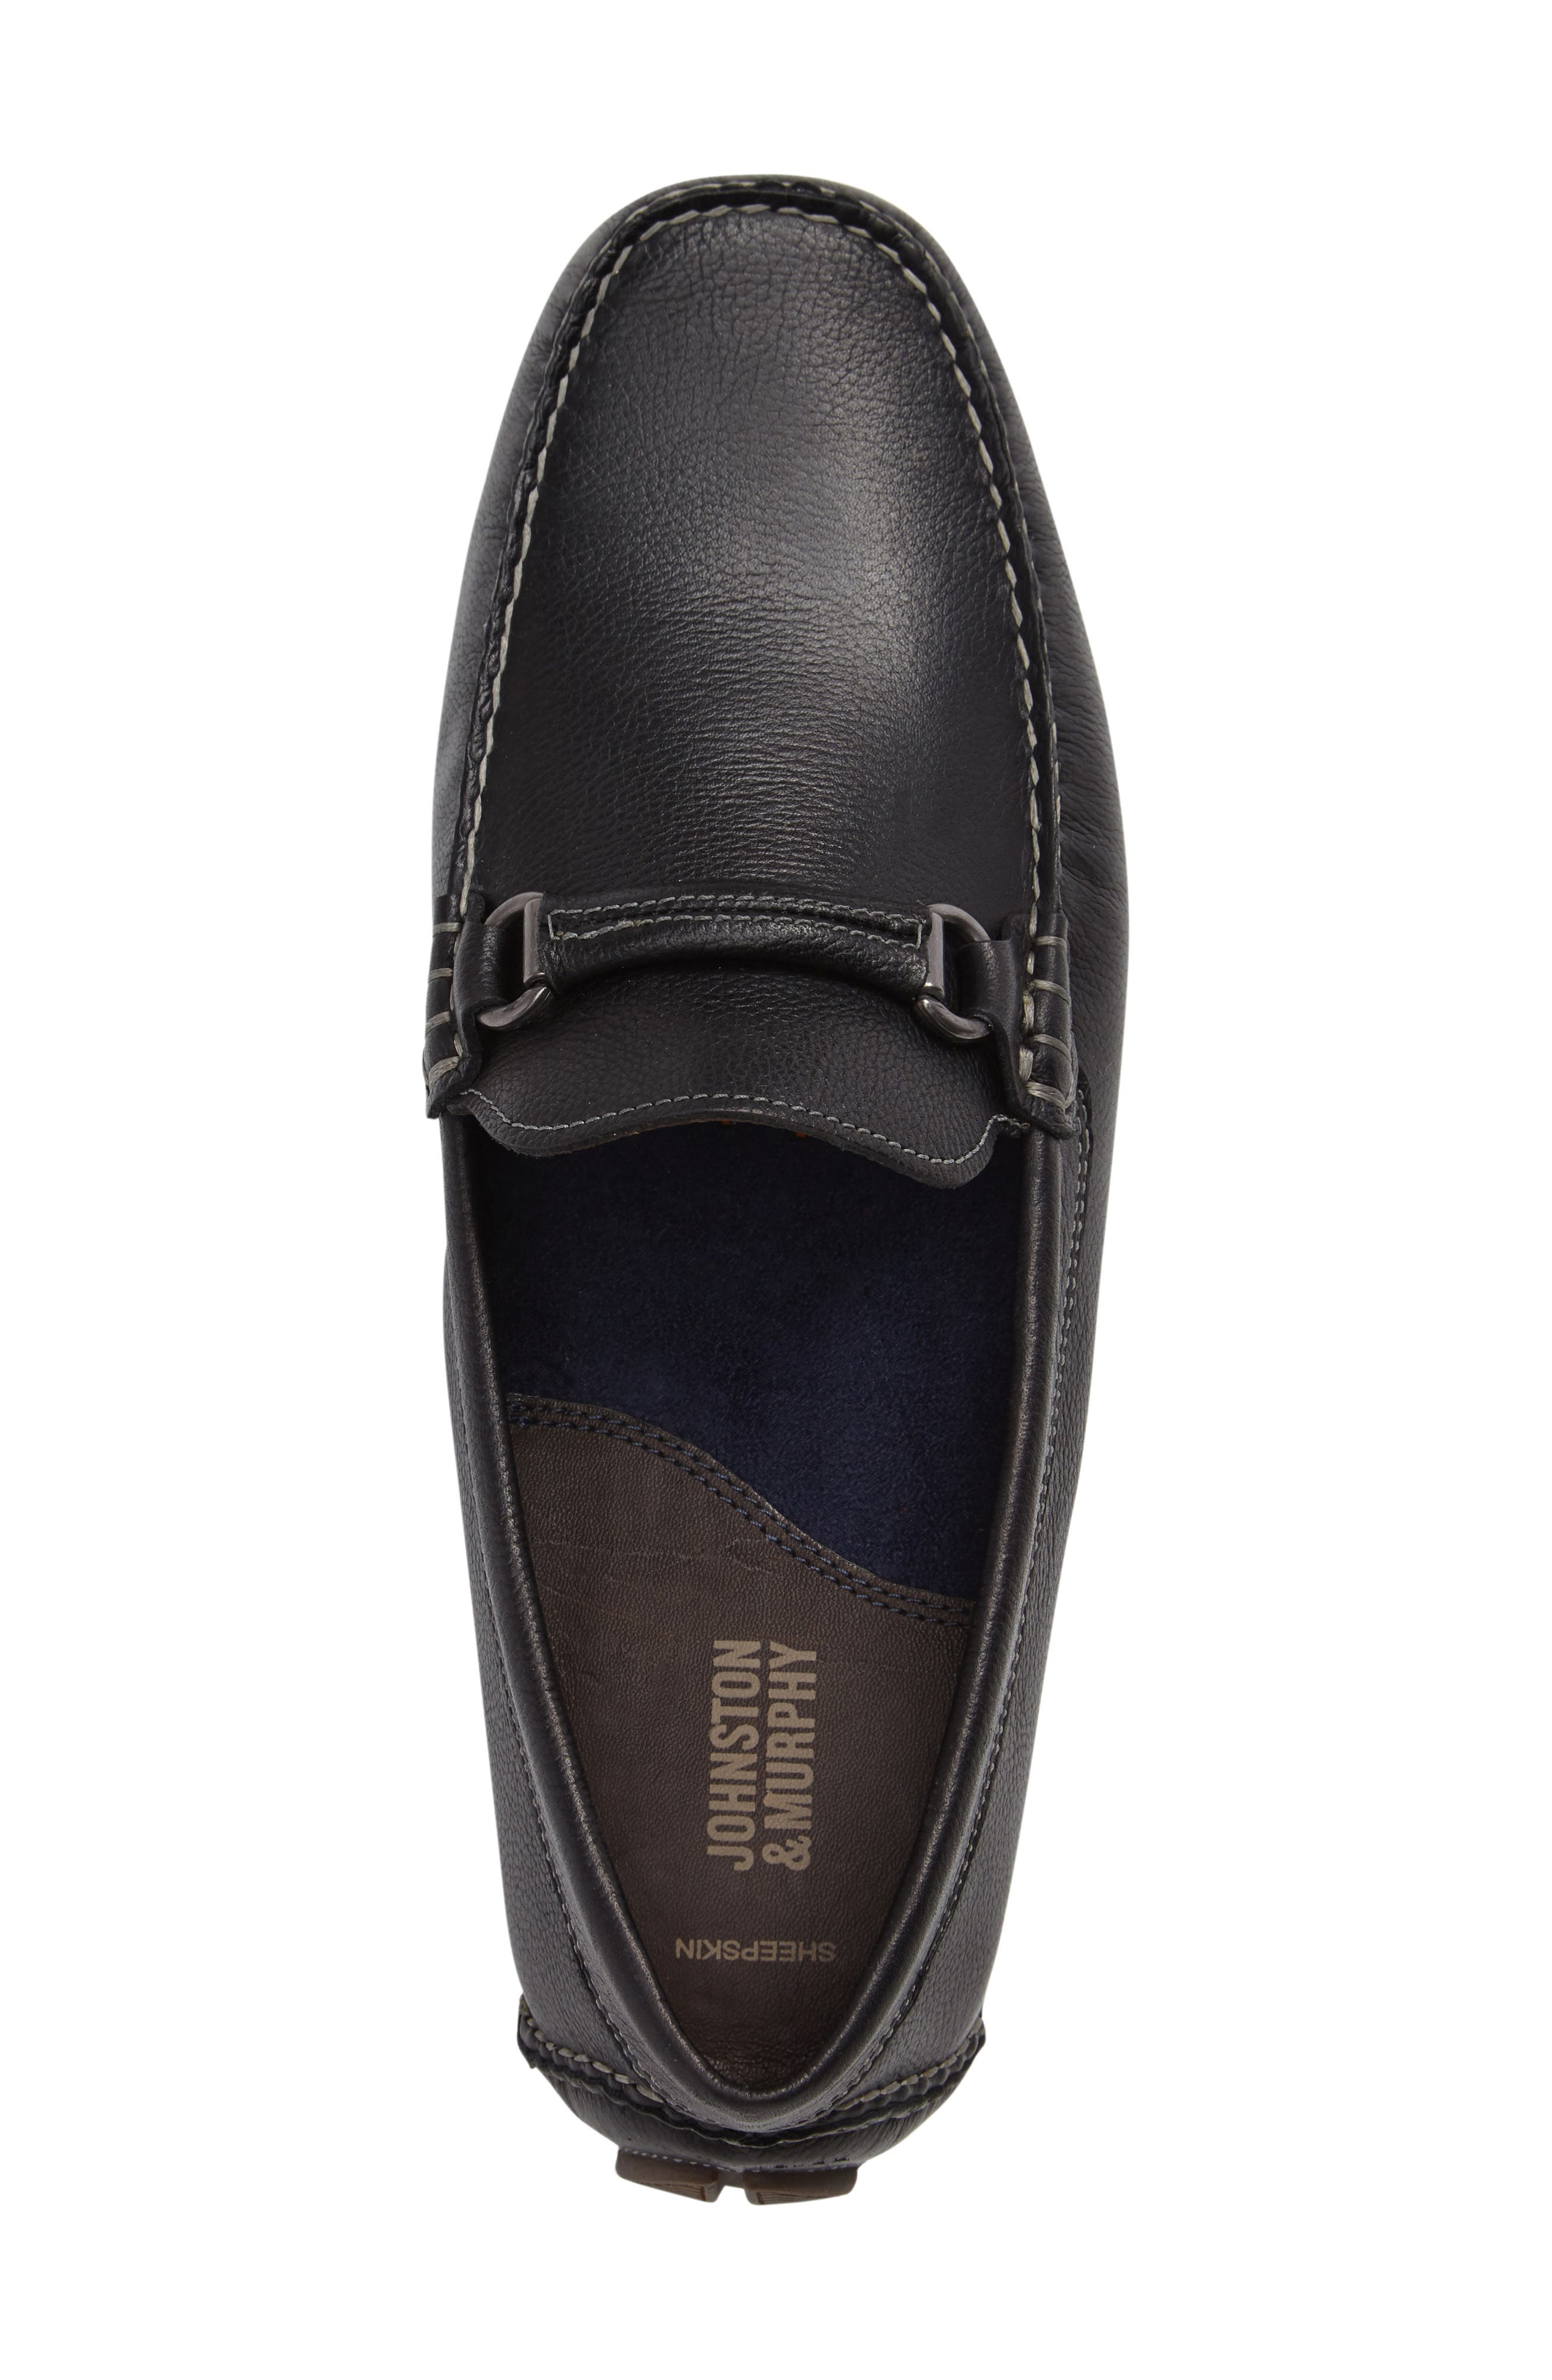 Gibson Bit Driving Loafer,                             Alternate thumbnail 3, color,                             Black Leather